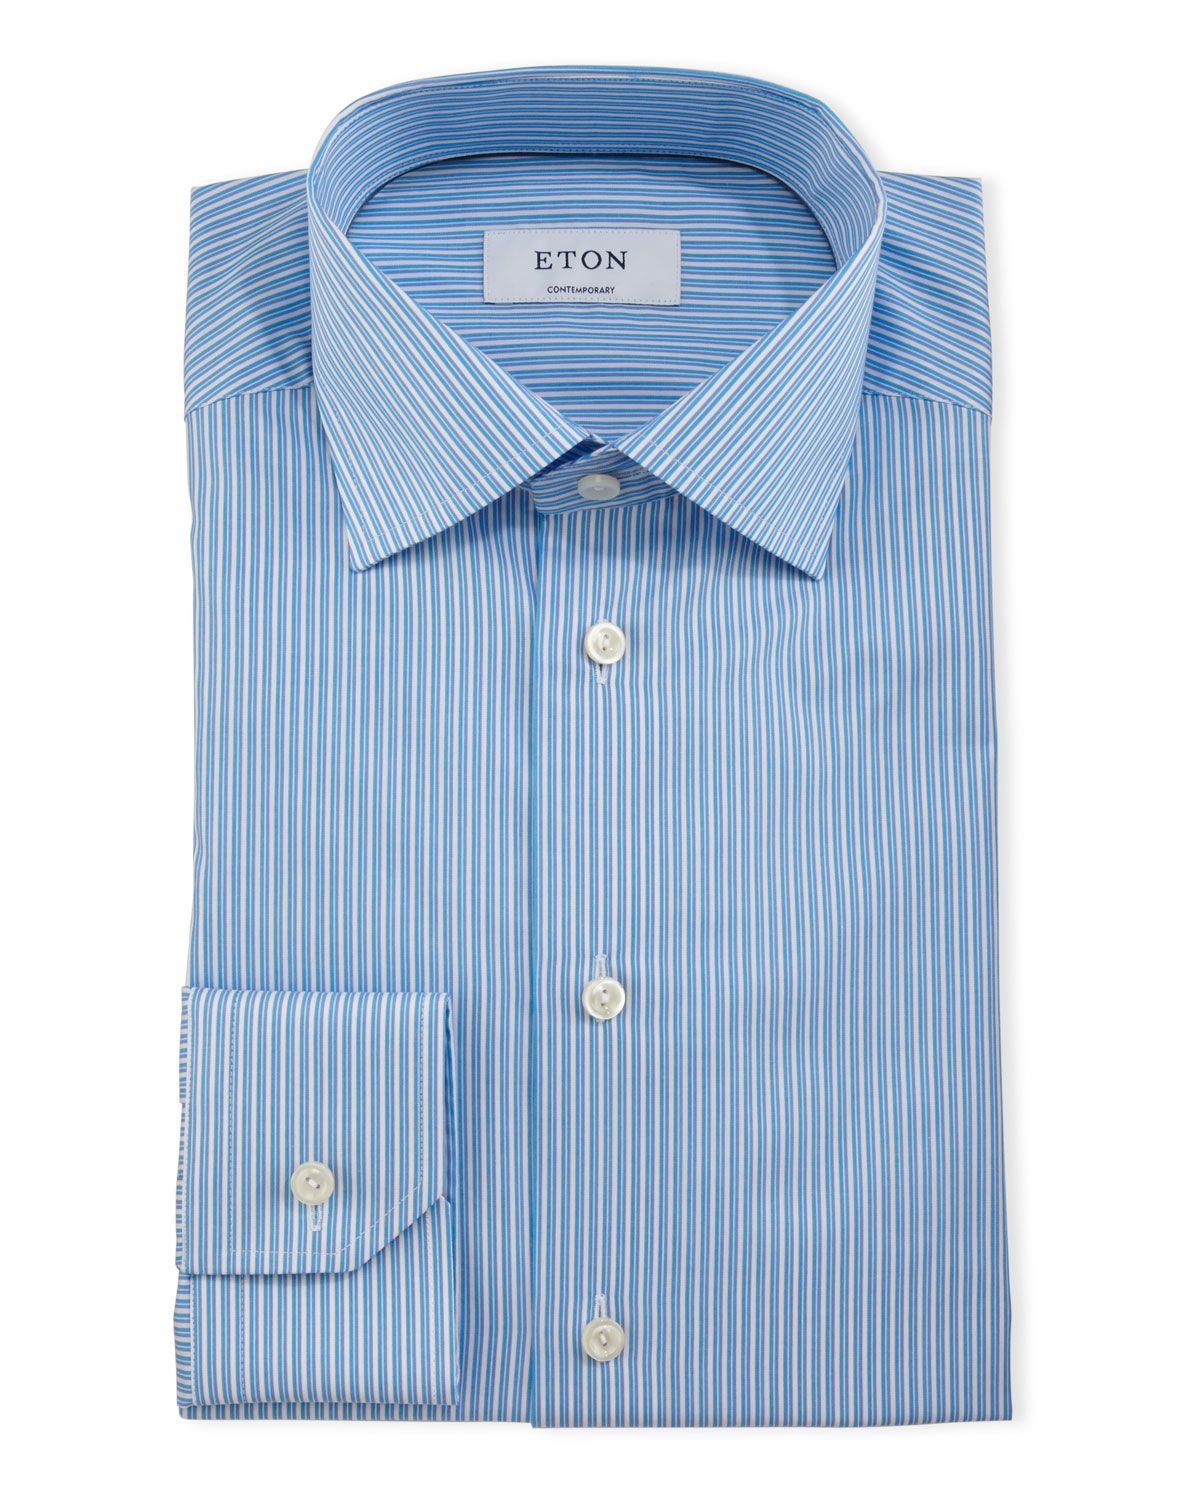 Green striped dress shirt  ContemporaryFit Striped Dress Shirt Turquoise  Eton  Chemises